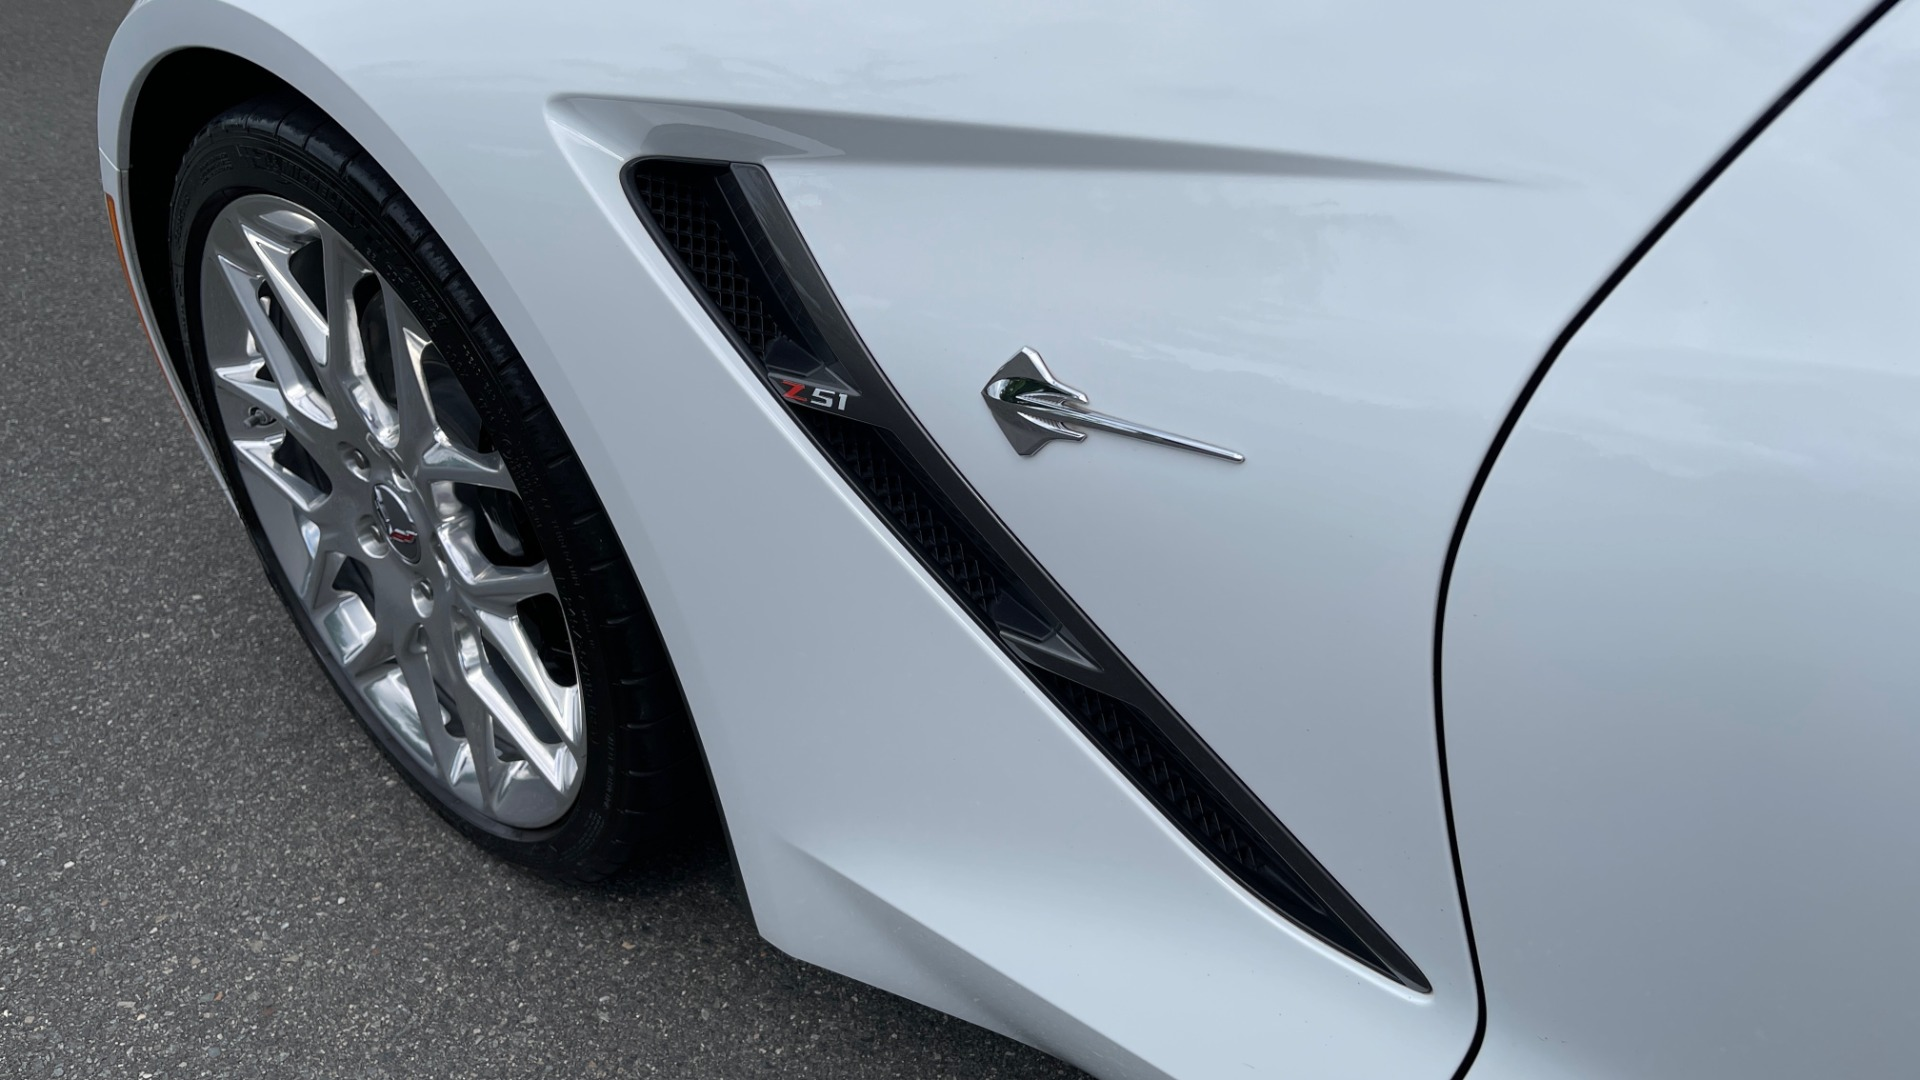 Used 2016 Chevrolet CORVETTE C7 STINGRAY COUPE Z51 3LT / NAV / PERF TRACTION MGMT / REARVIEW for sale Sold at Formula Imports in Charlotte NC 28227 10